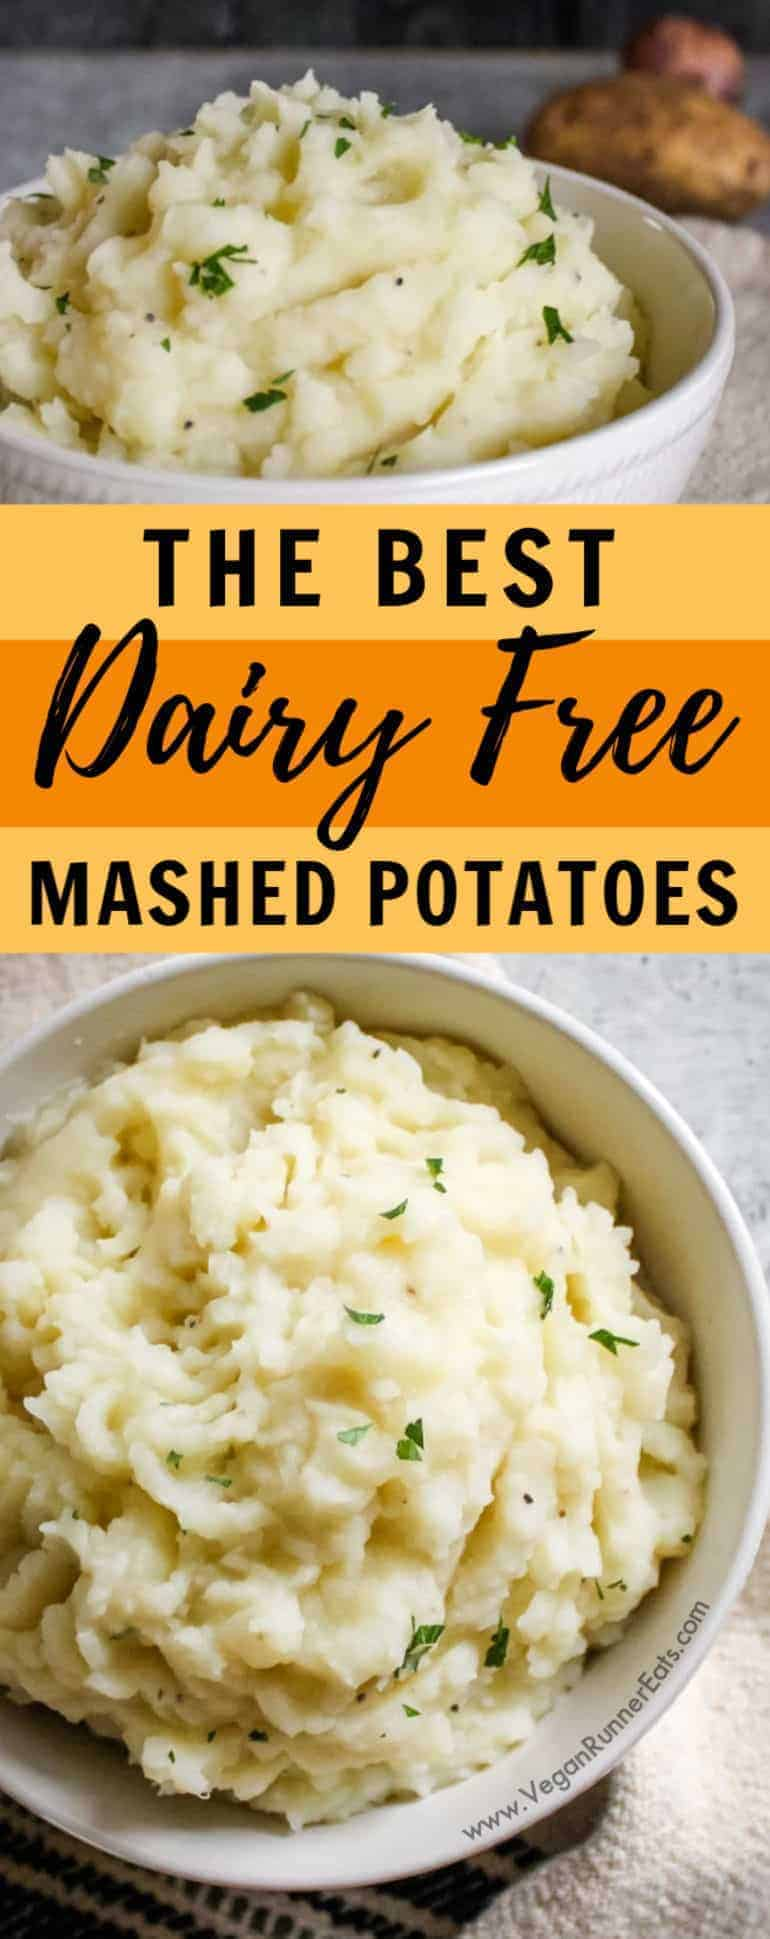 The best dairy free mashed potatoes recipe - easy enough to make every day, yet delicious for special occasions like Thanksgiving or Christmas!